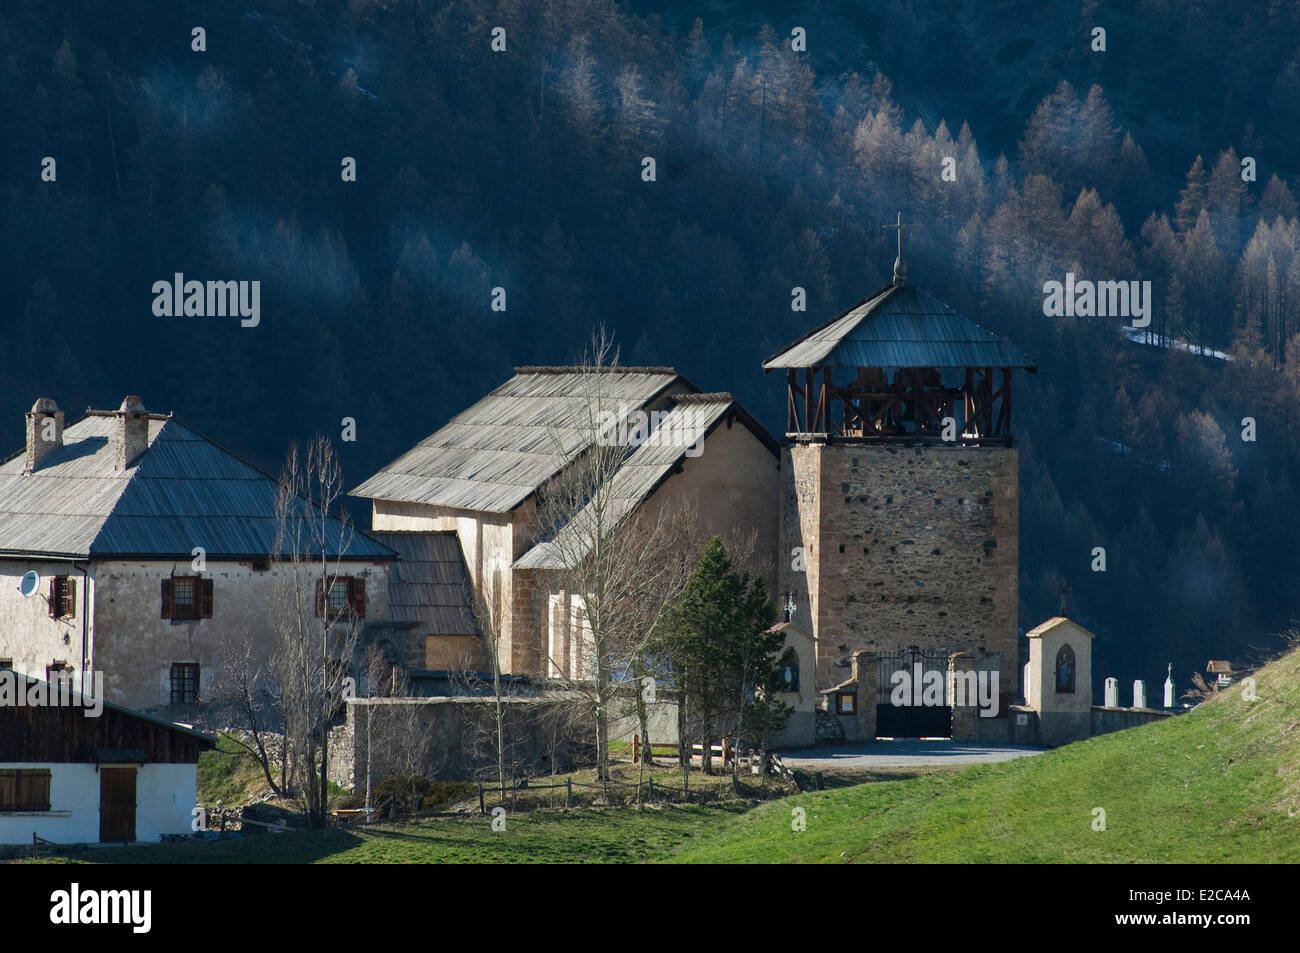 France, Hautes Alpes, Regional Natural Park of Queyras, Molines en Queyras, church and cemetery - Stock Image